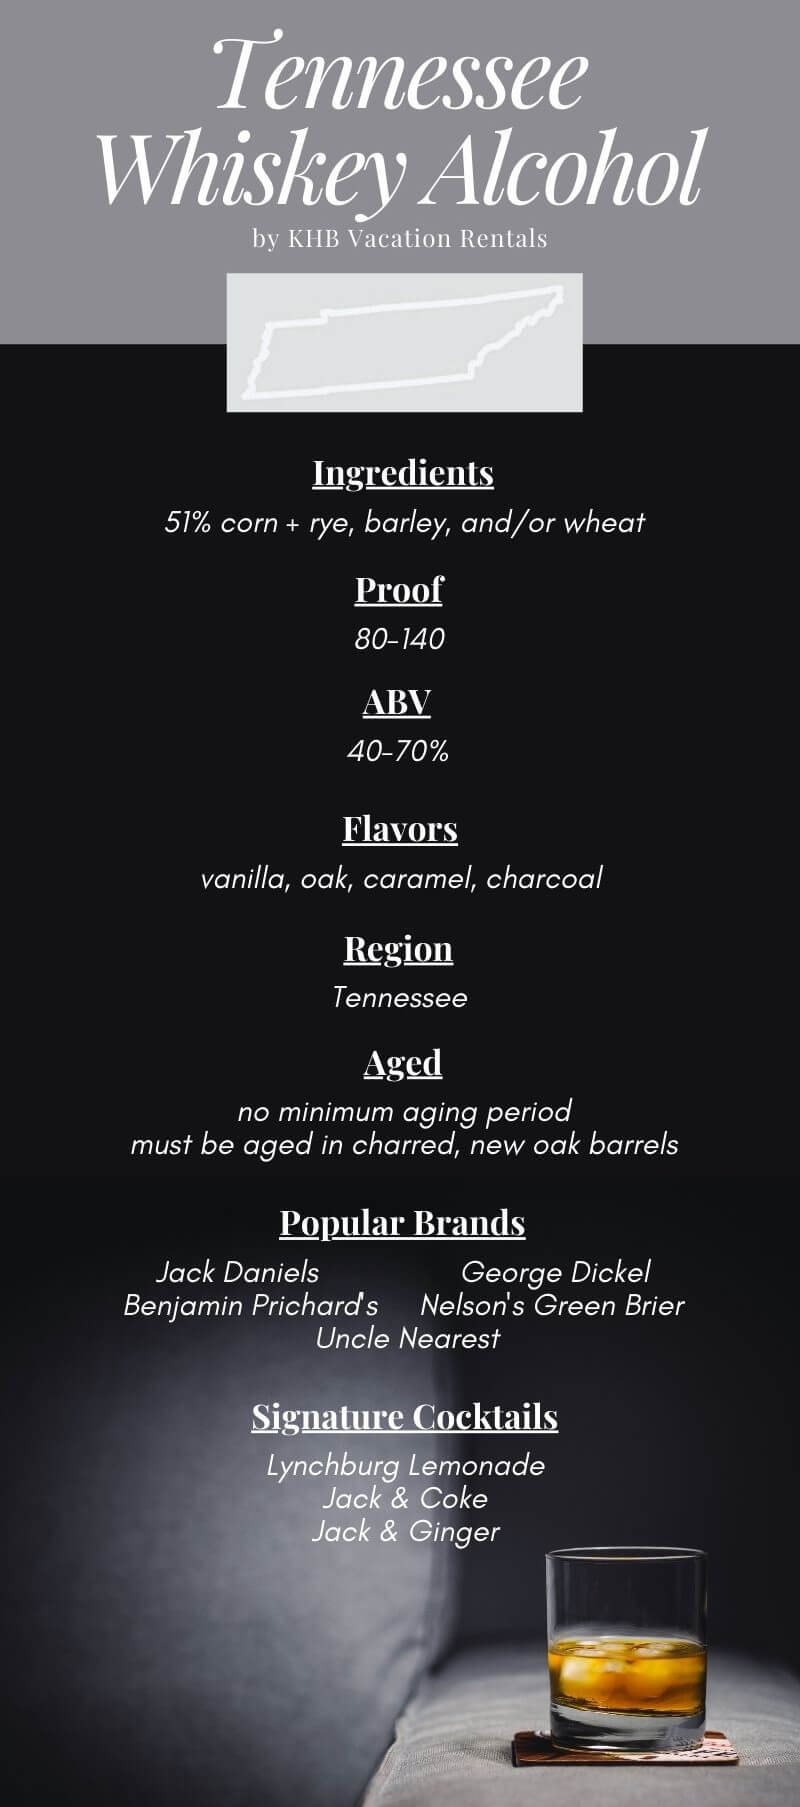 Tennessee Whiskey Alcohol Infographic